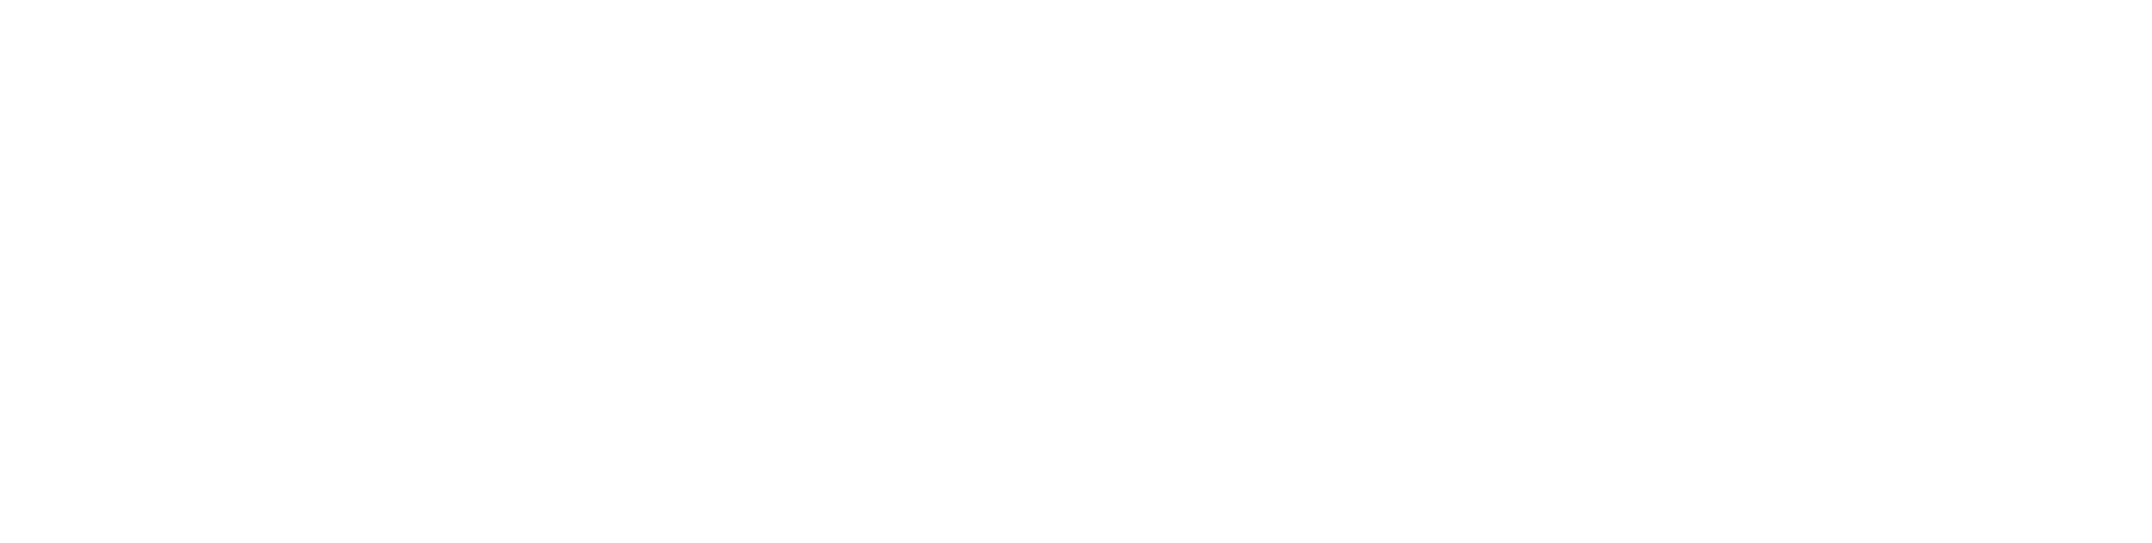 Airbag Compatible